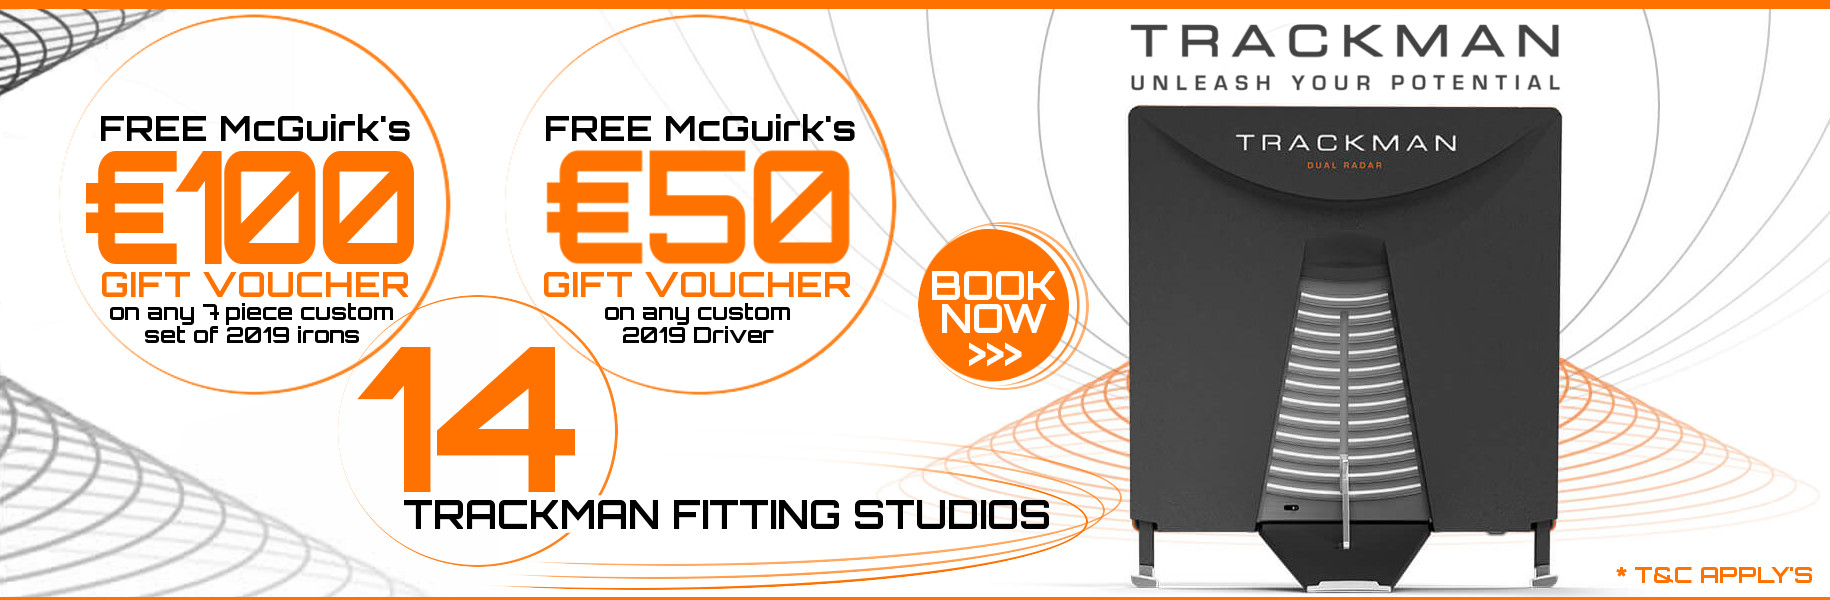 Free gift vouchers with custom fitting